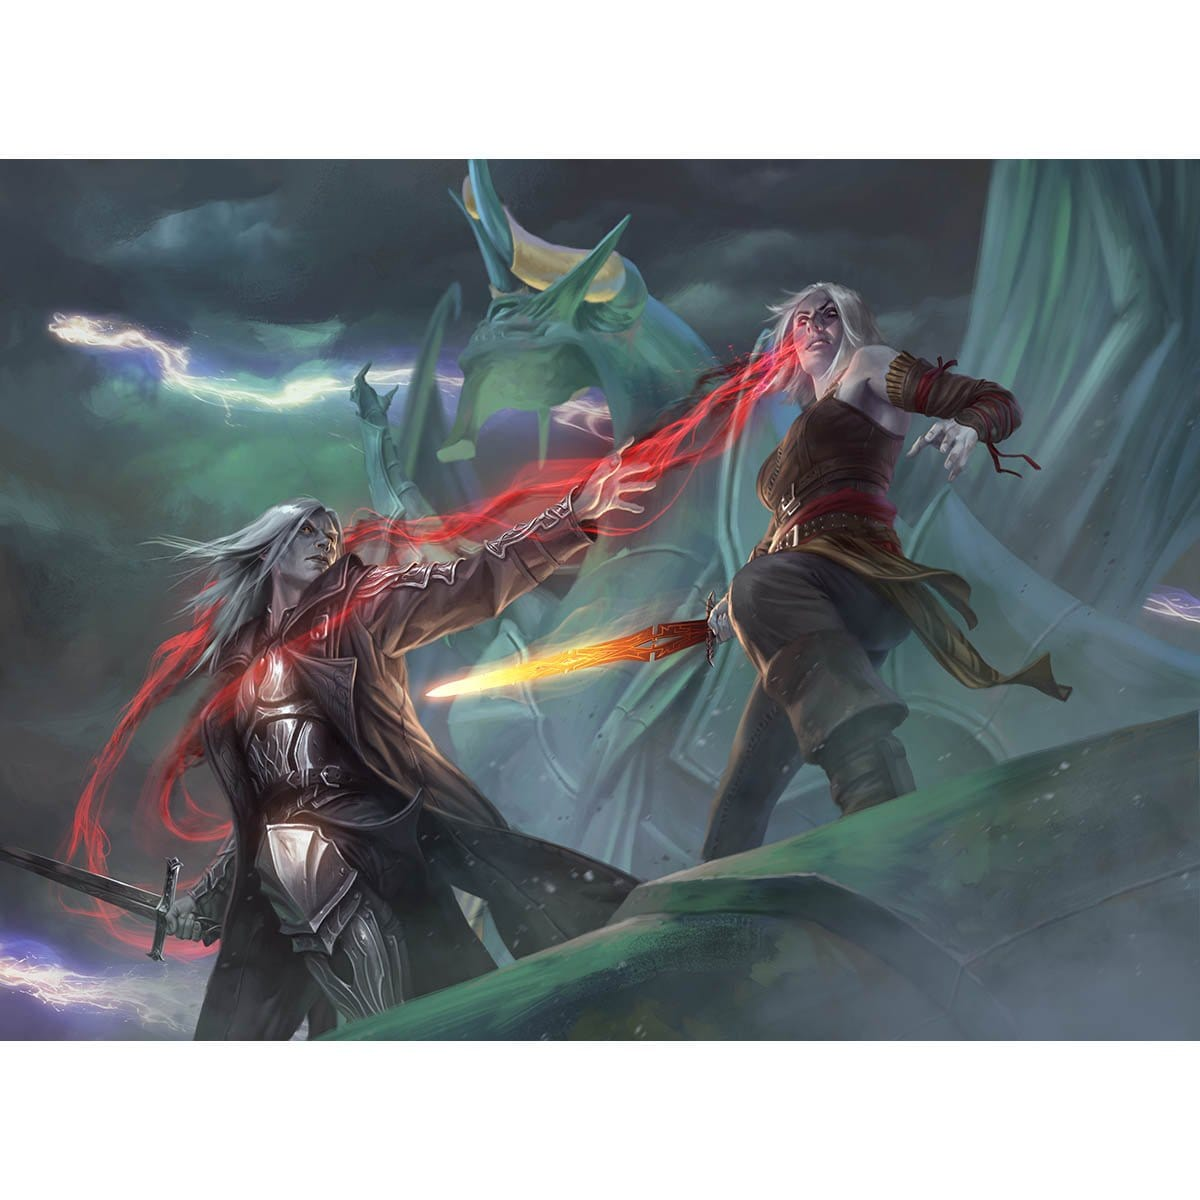 Sorin's Thirst Print - Print - Original Magic Art - Accessories for Magic the Gathering and other card games